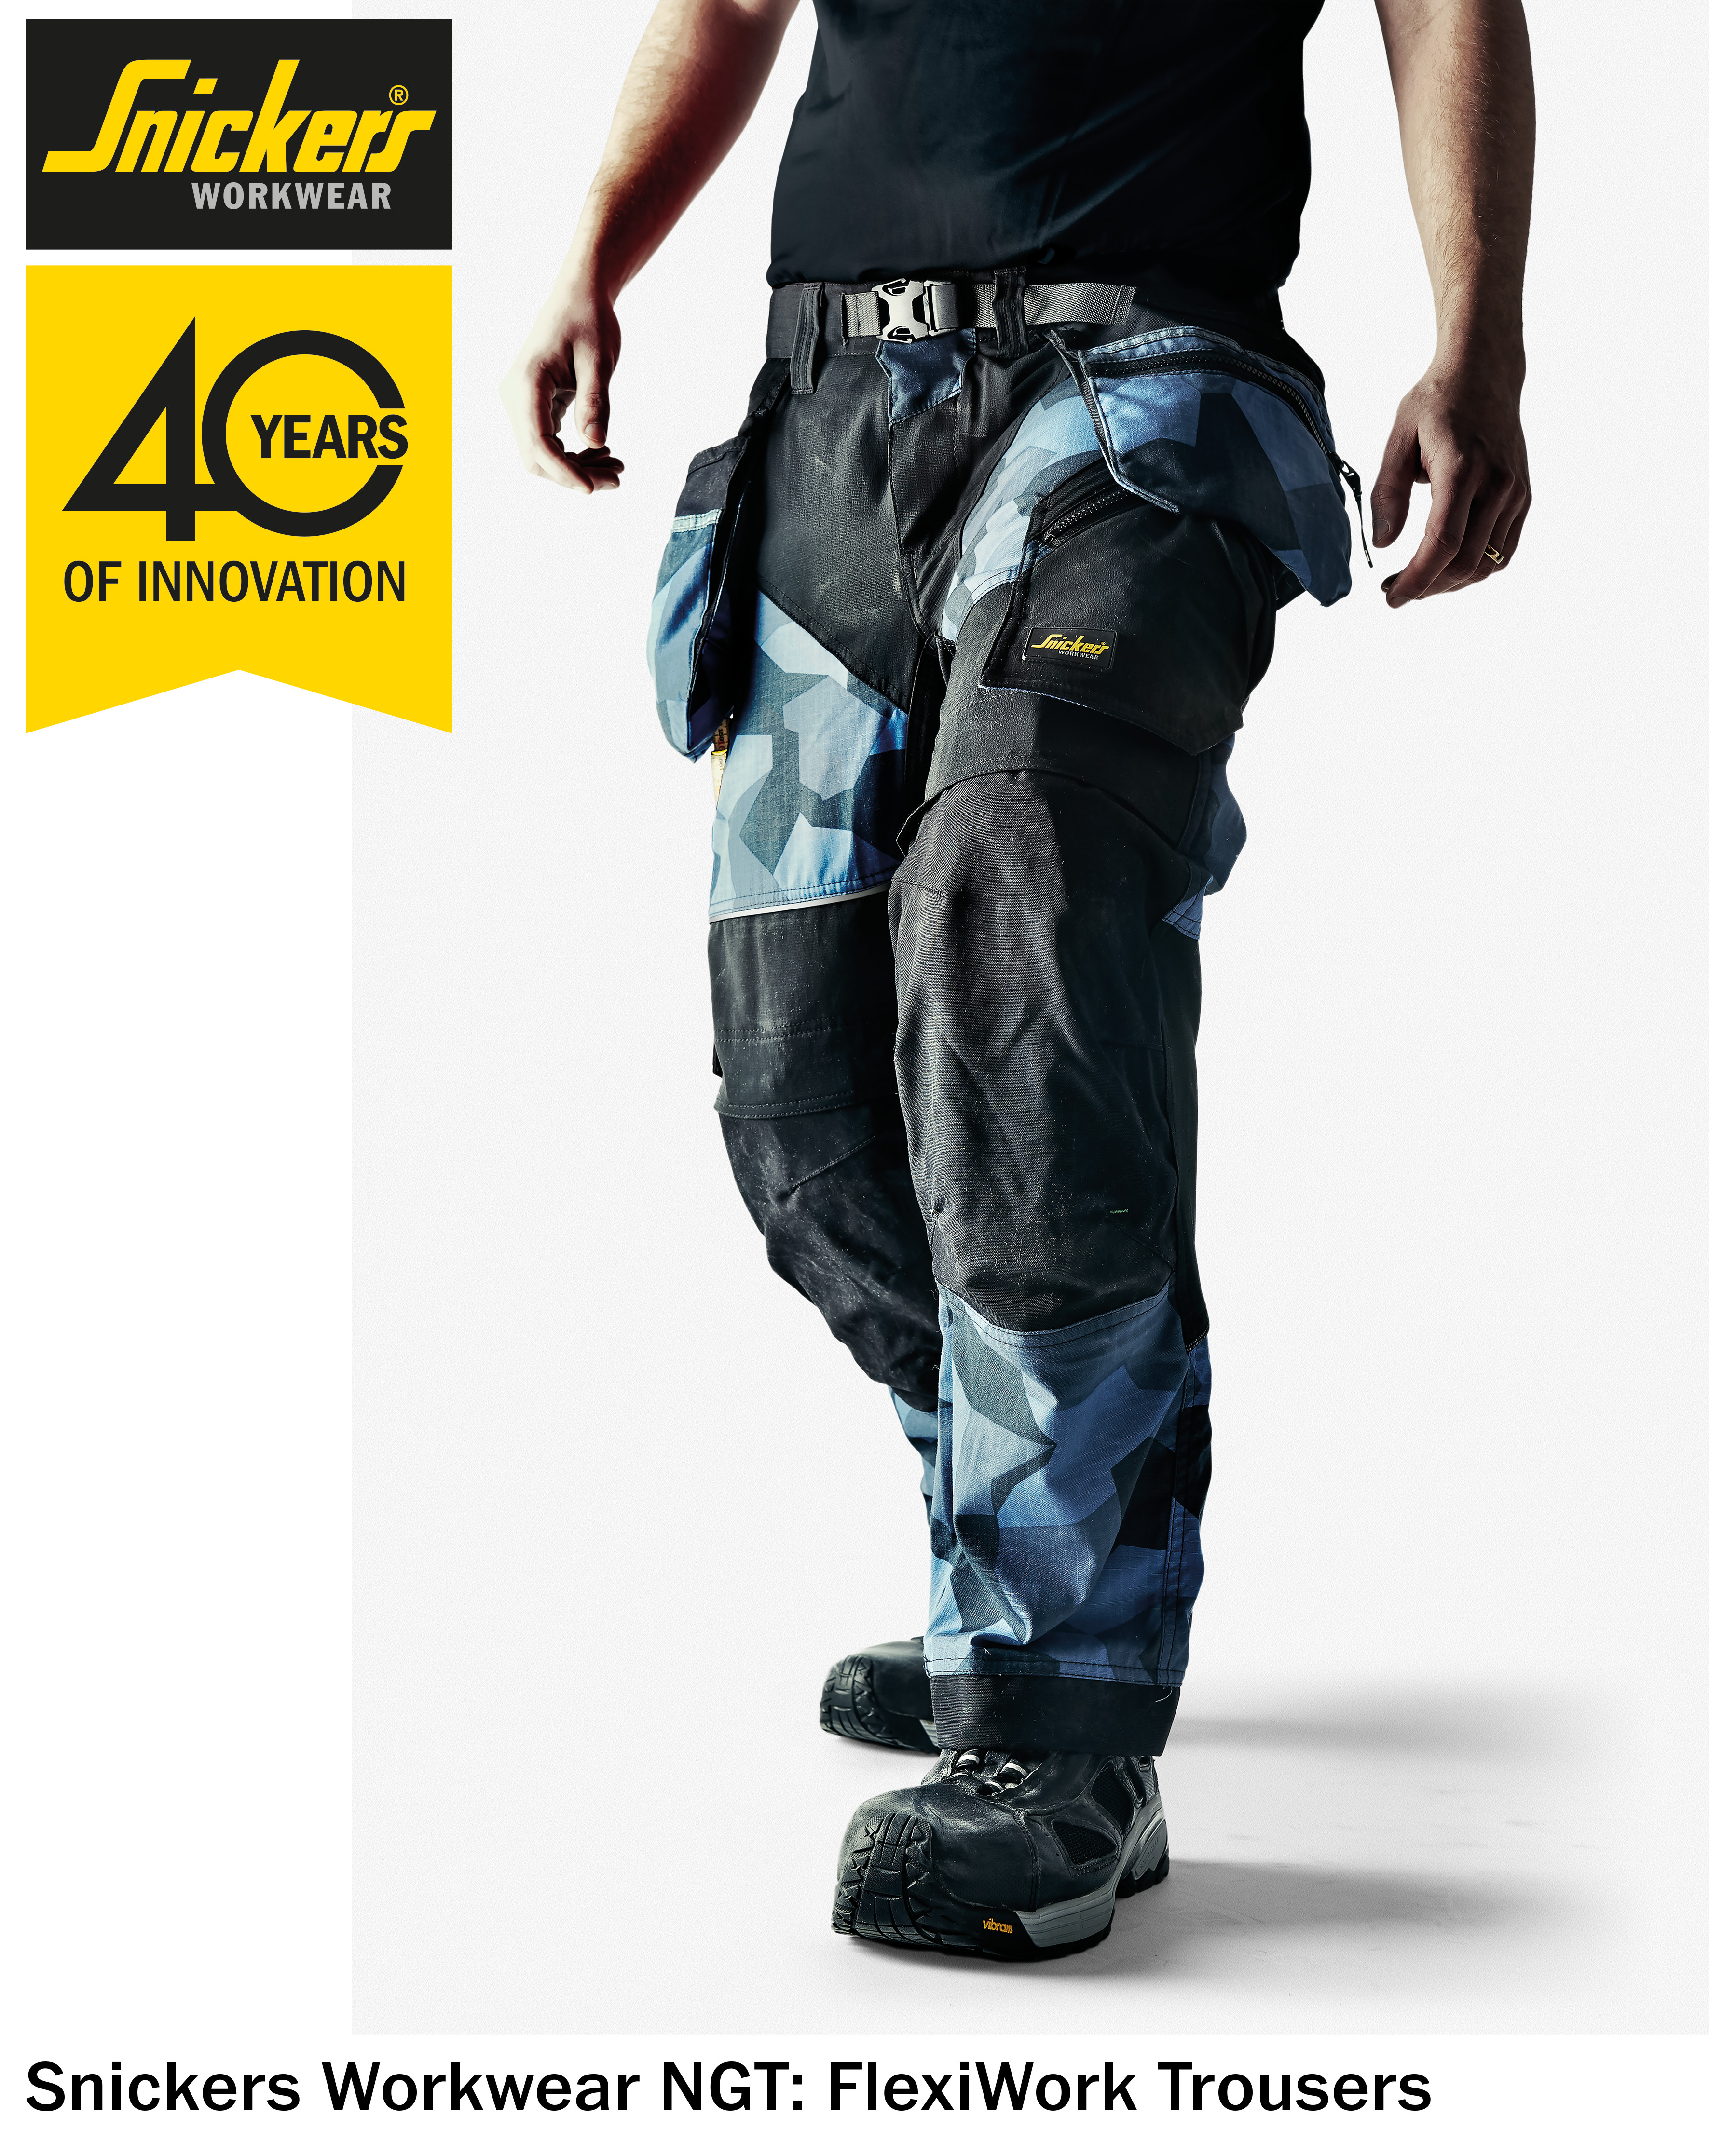 Snickers Workwear Launches The Next Generation Of Work